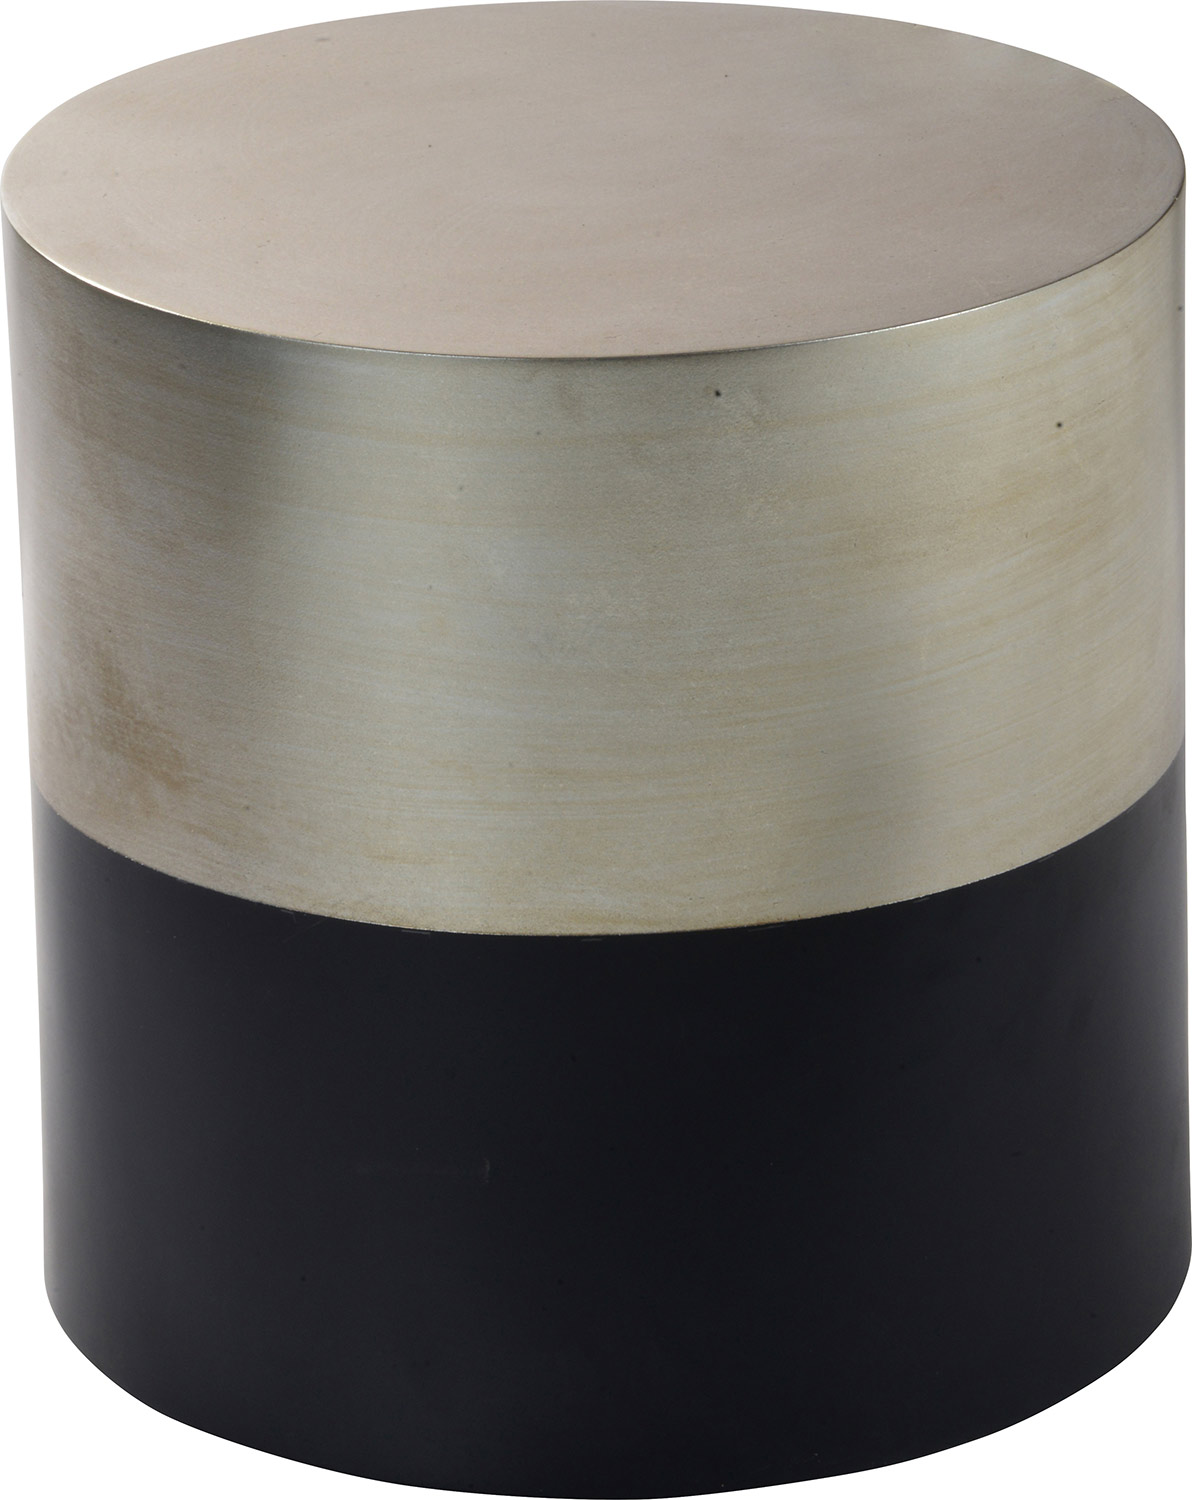 Ren-Wil Barrio Side Table - Champagne Silver Leaf